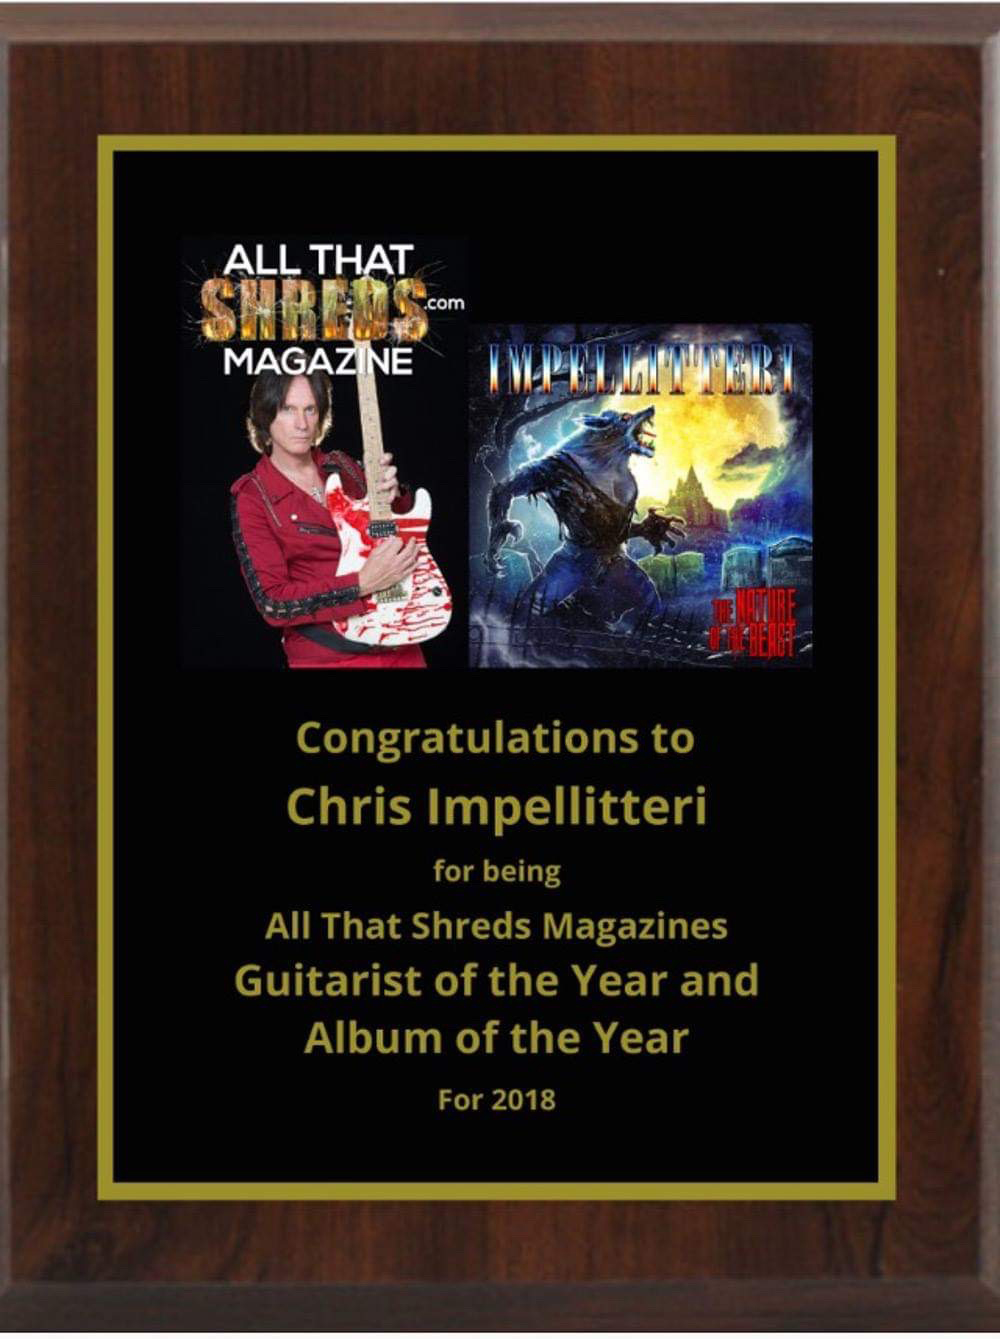 Chris Impellitteri:  All That Shreds Magazines Album & Guitarist Of The Year For 2018